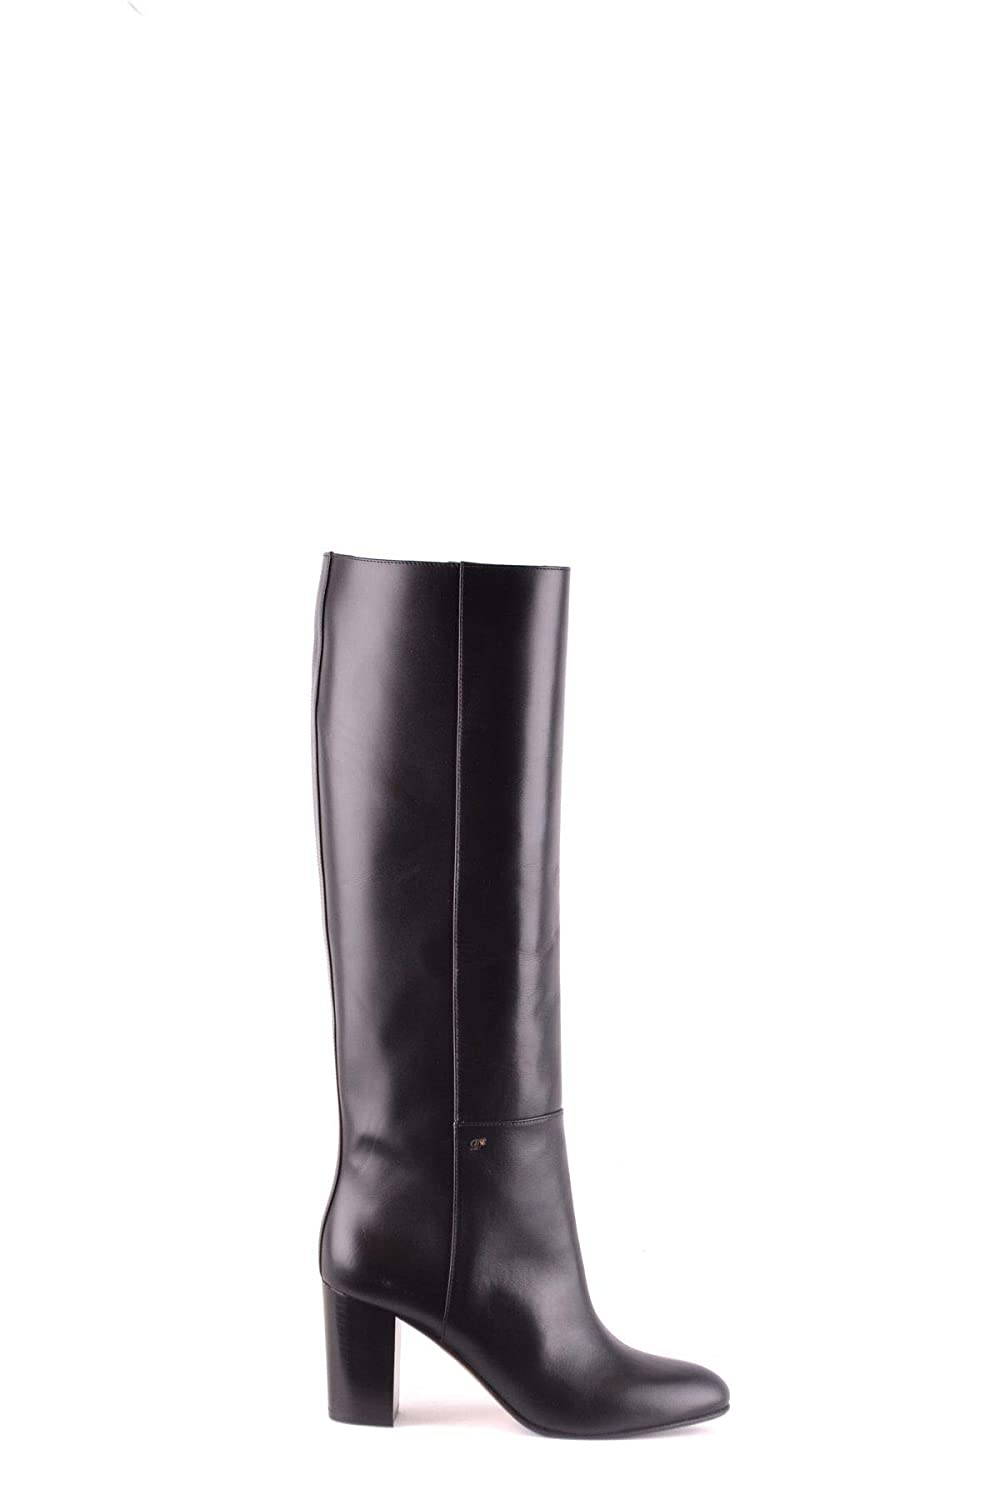 - DSQUARED2 Women's MCBI31519 Black Leather Ankle Boots